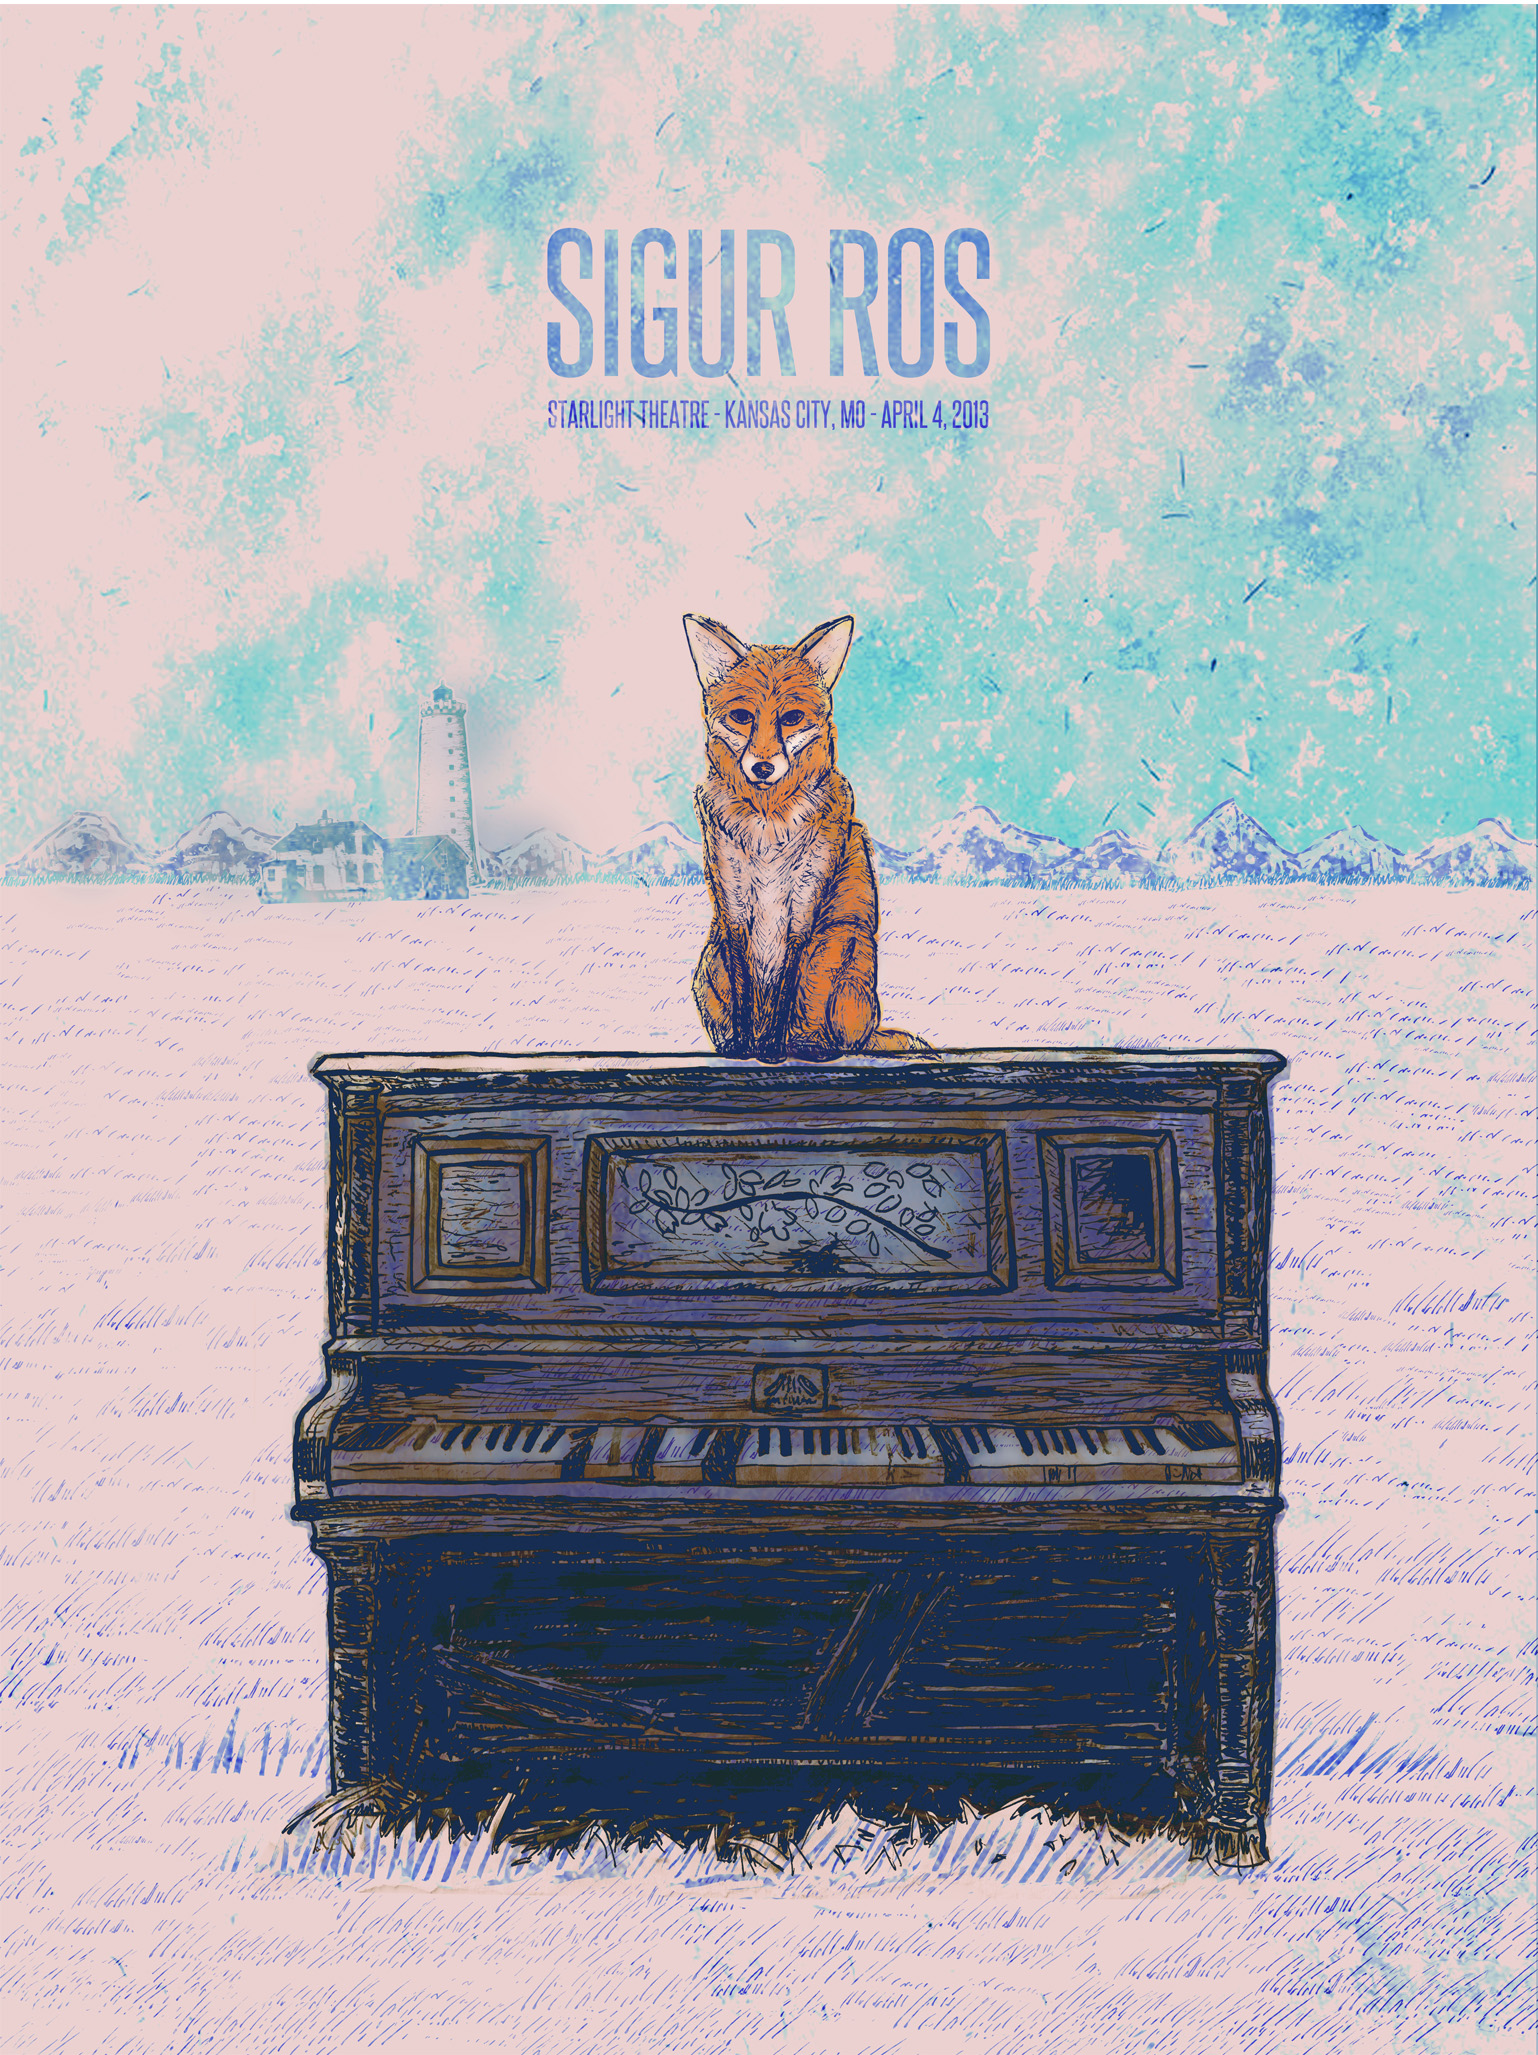 Sigur Ros Gig Poster  - image 14 - student project